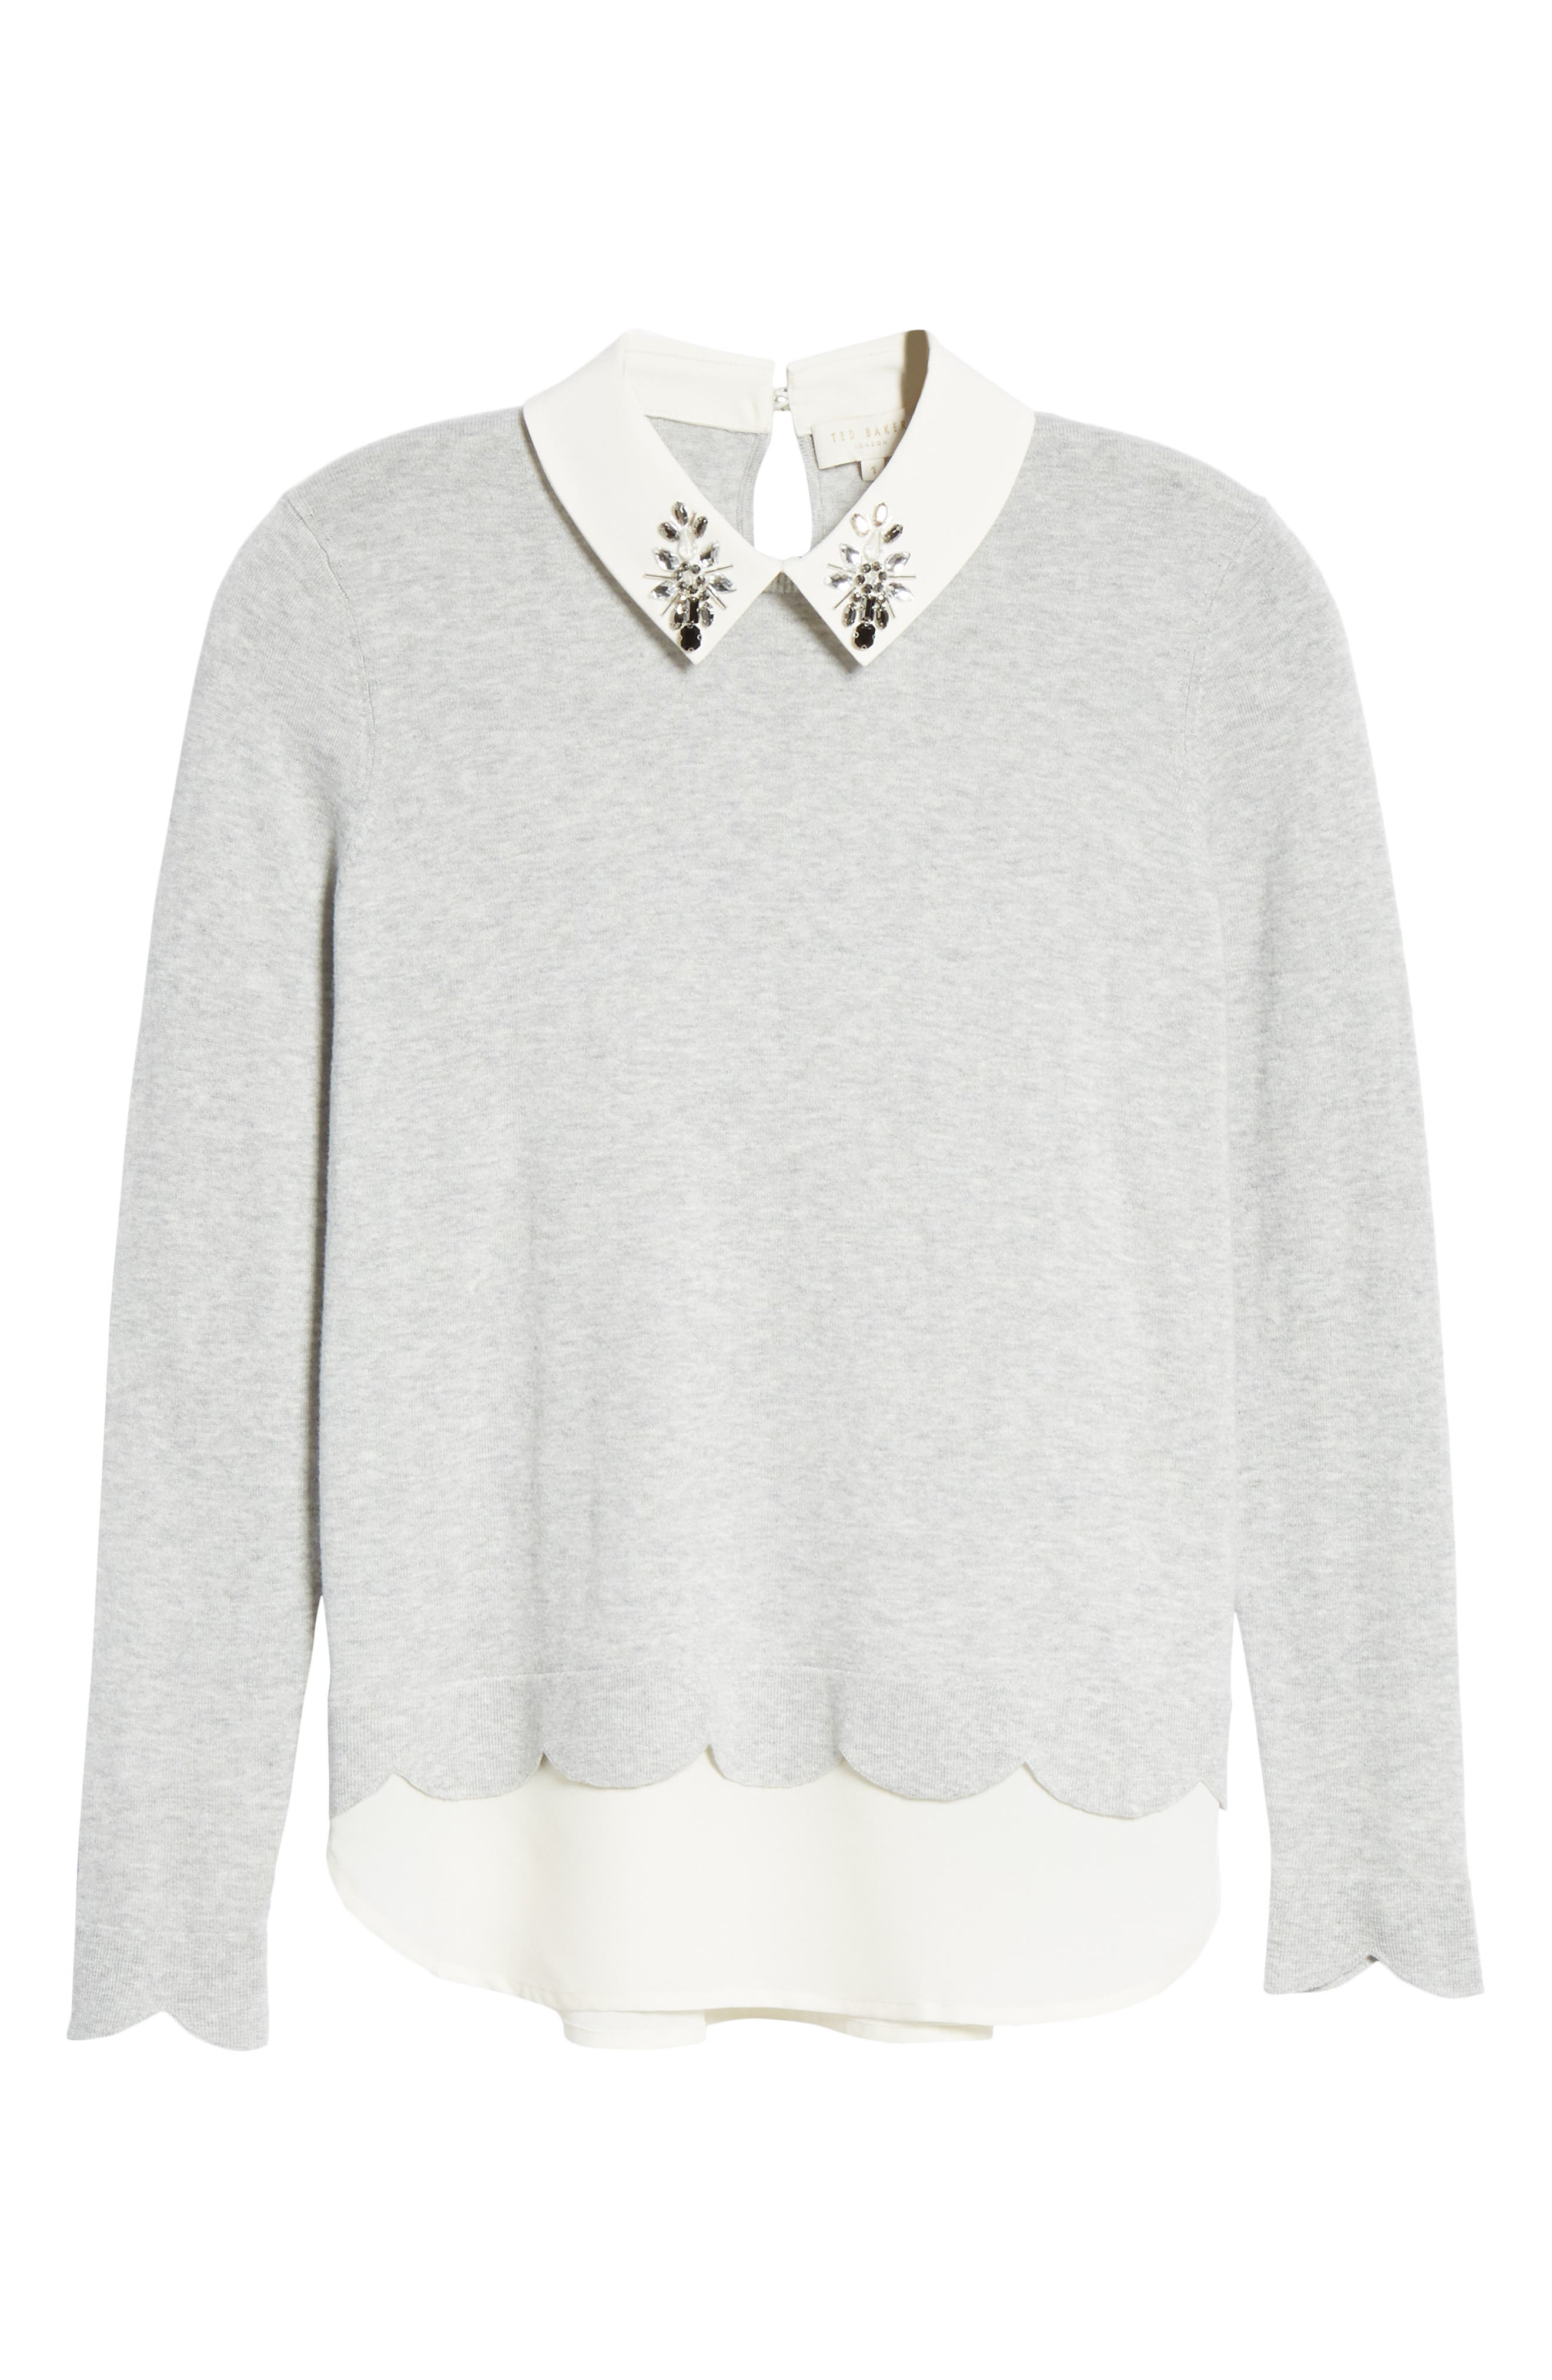 Suzaine Layered Sweater,                             Alternate thumbnail 6, color,                             GREY